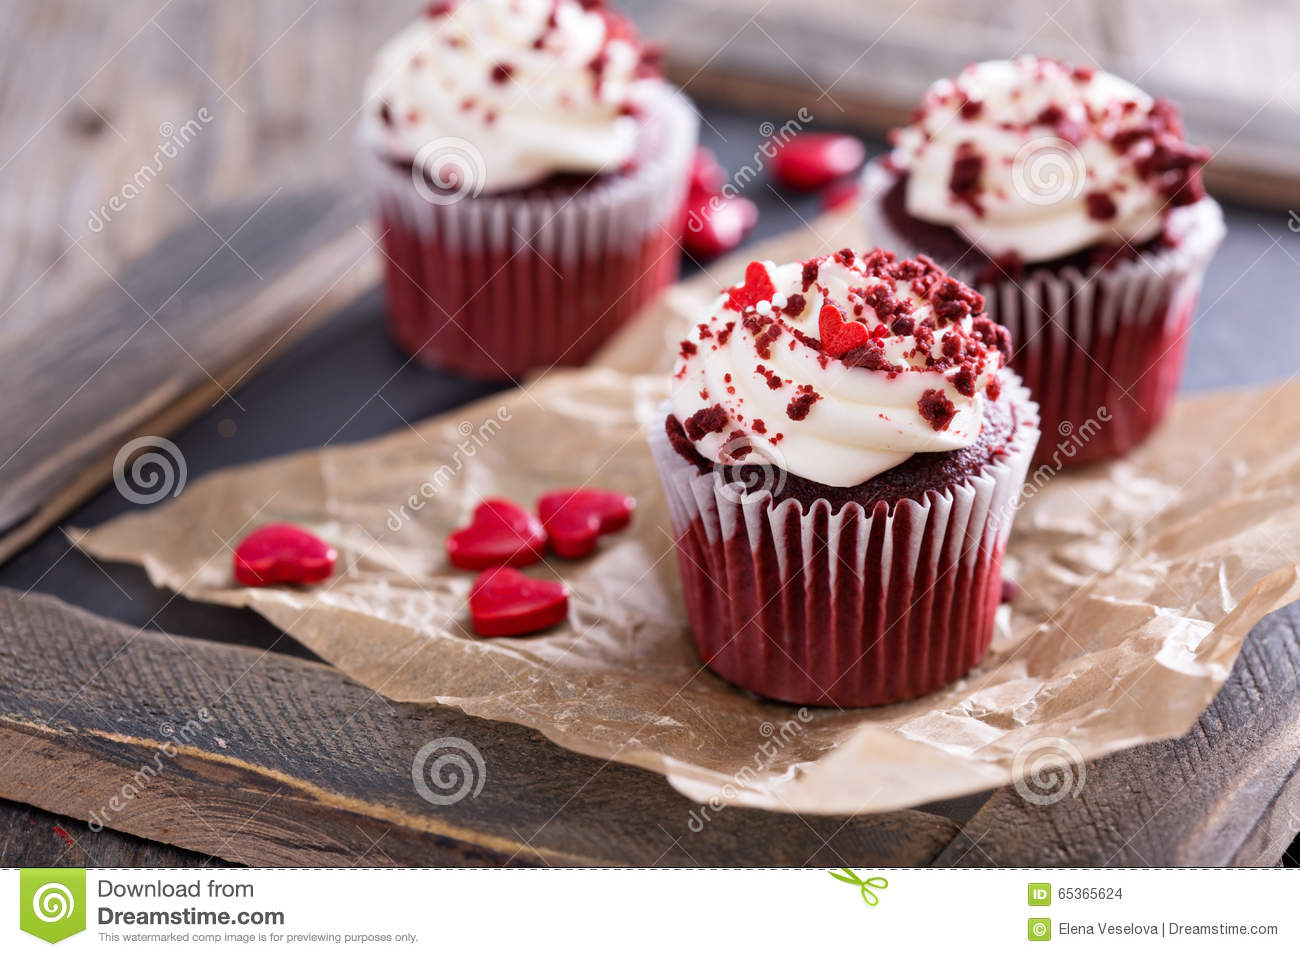 Valentine's Day Red Velvet Cupcakes